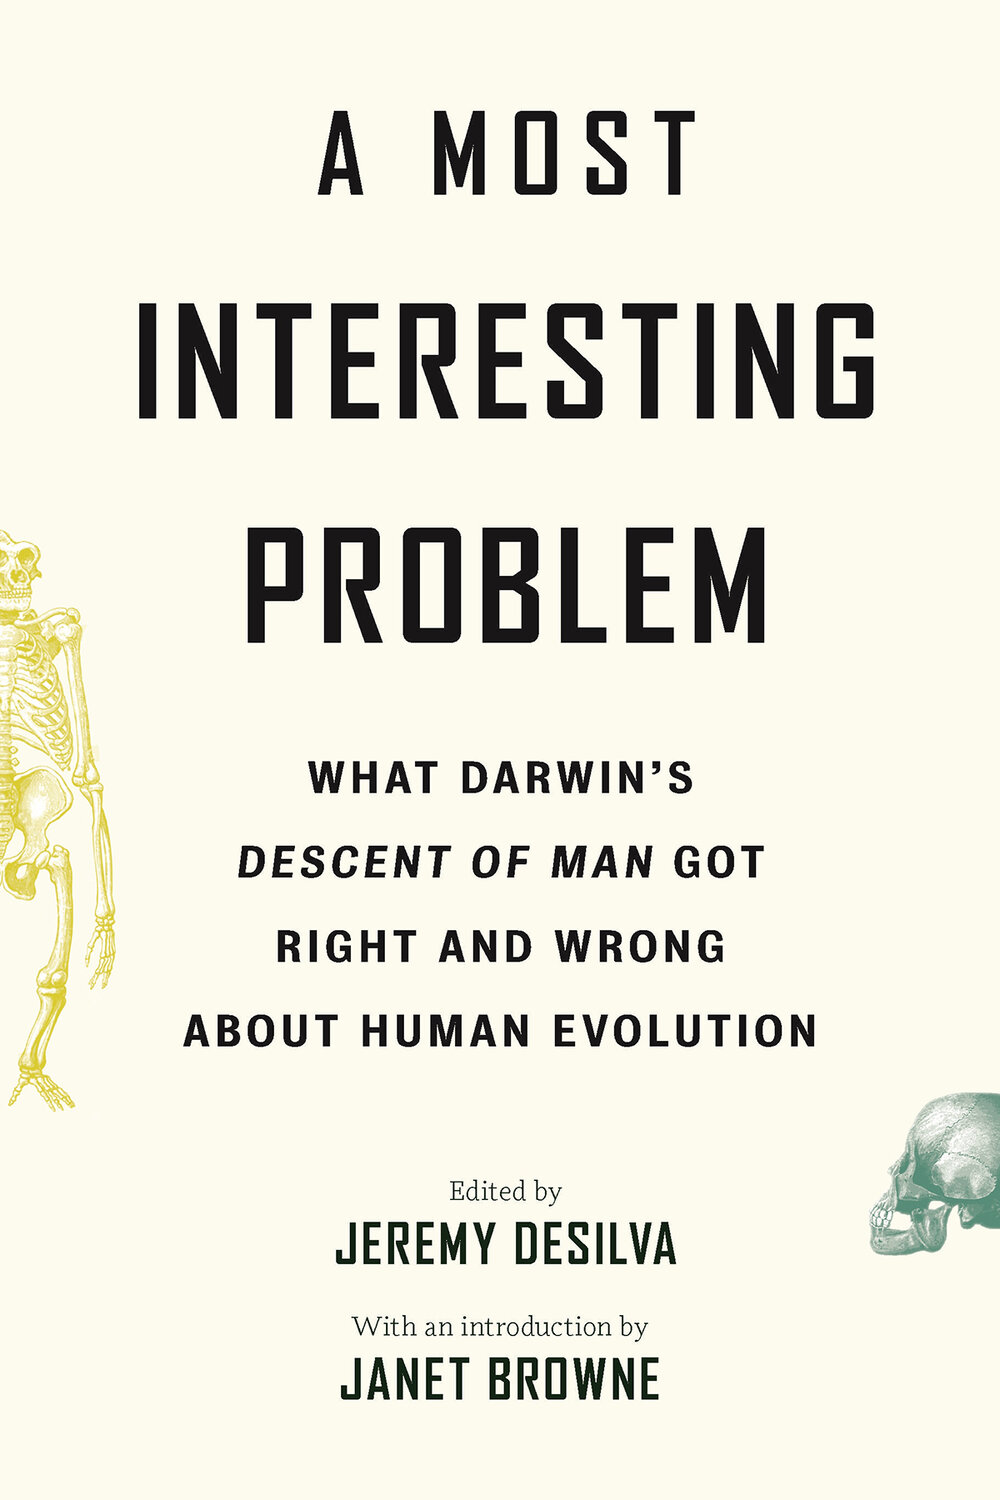 A Most Interesting Problem: What Darwin's Decent of Man Got Right and Wrong About Human Evolution by Jeremy Desilva